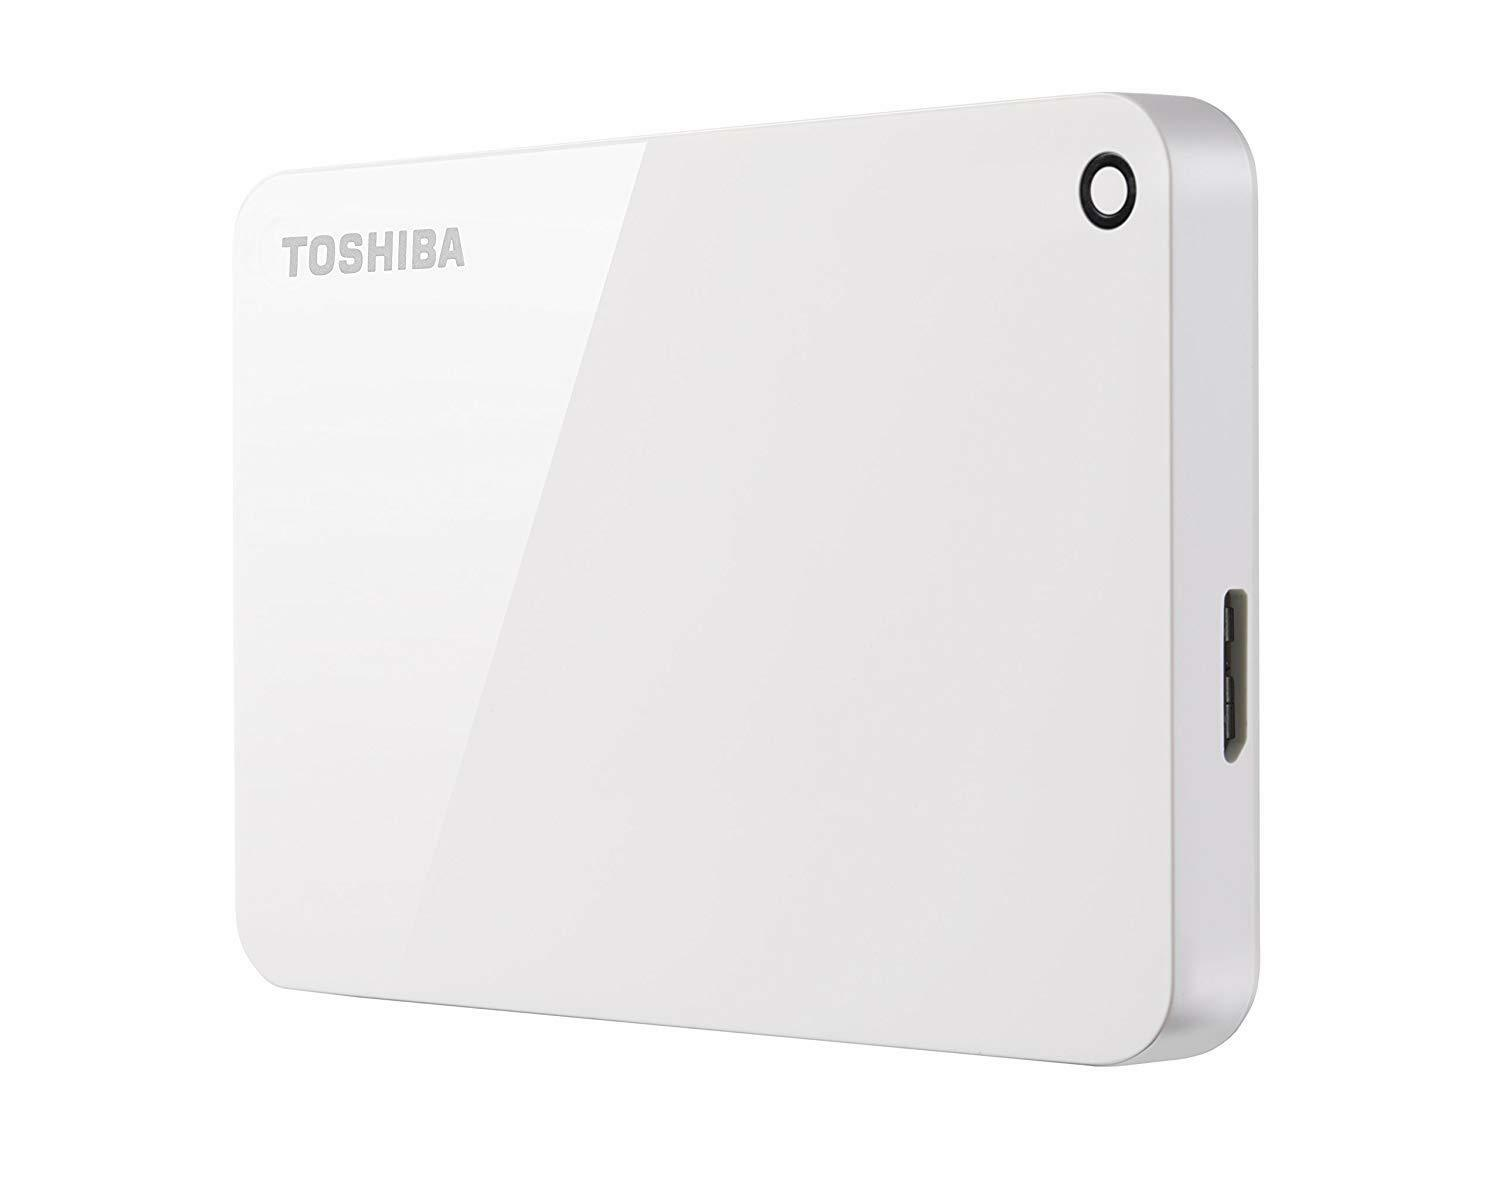 Toshiba Canvio Advance 2TB Portable External Hard Drive USB